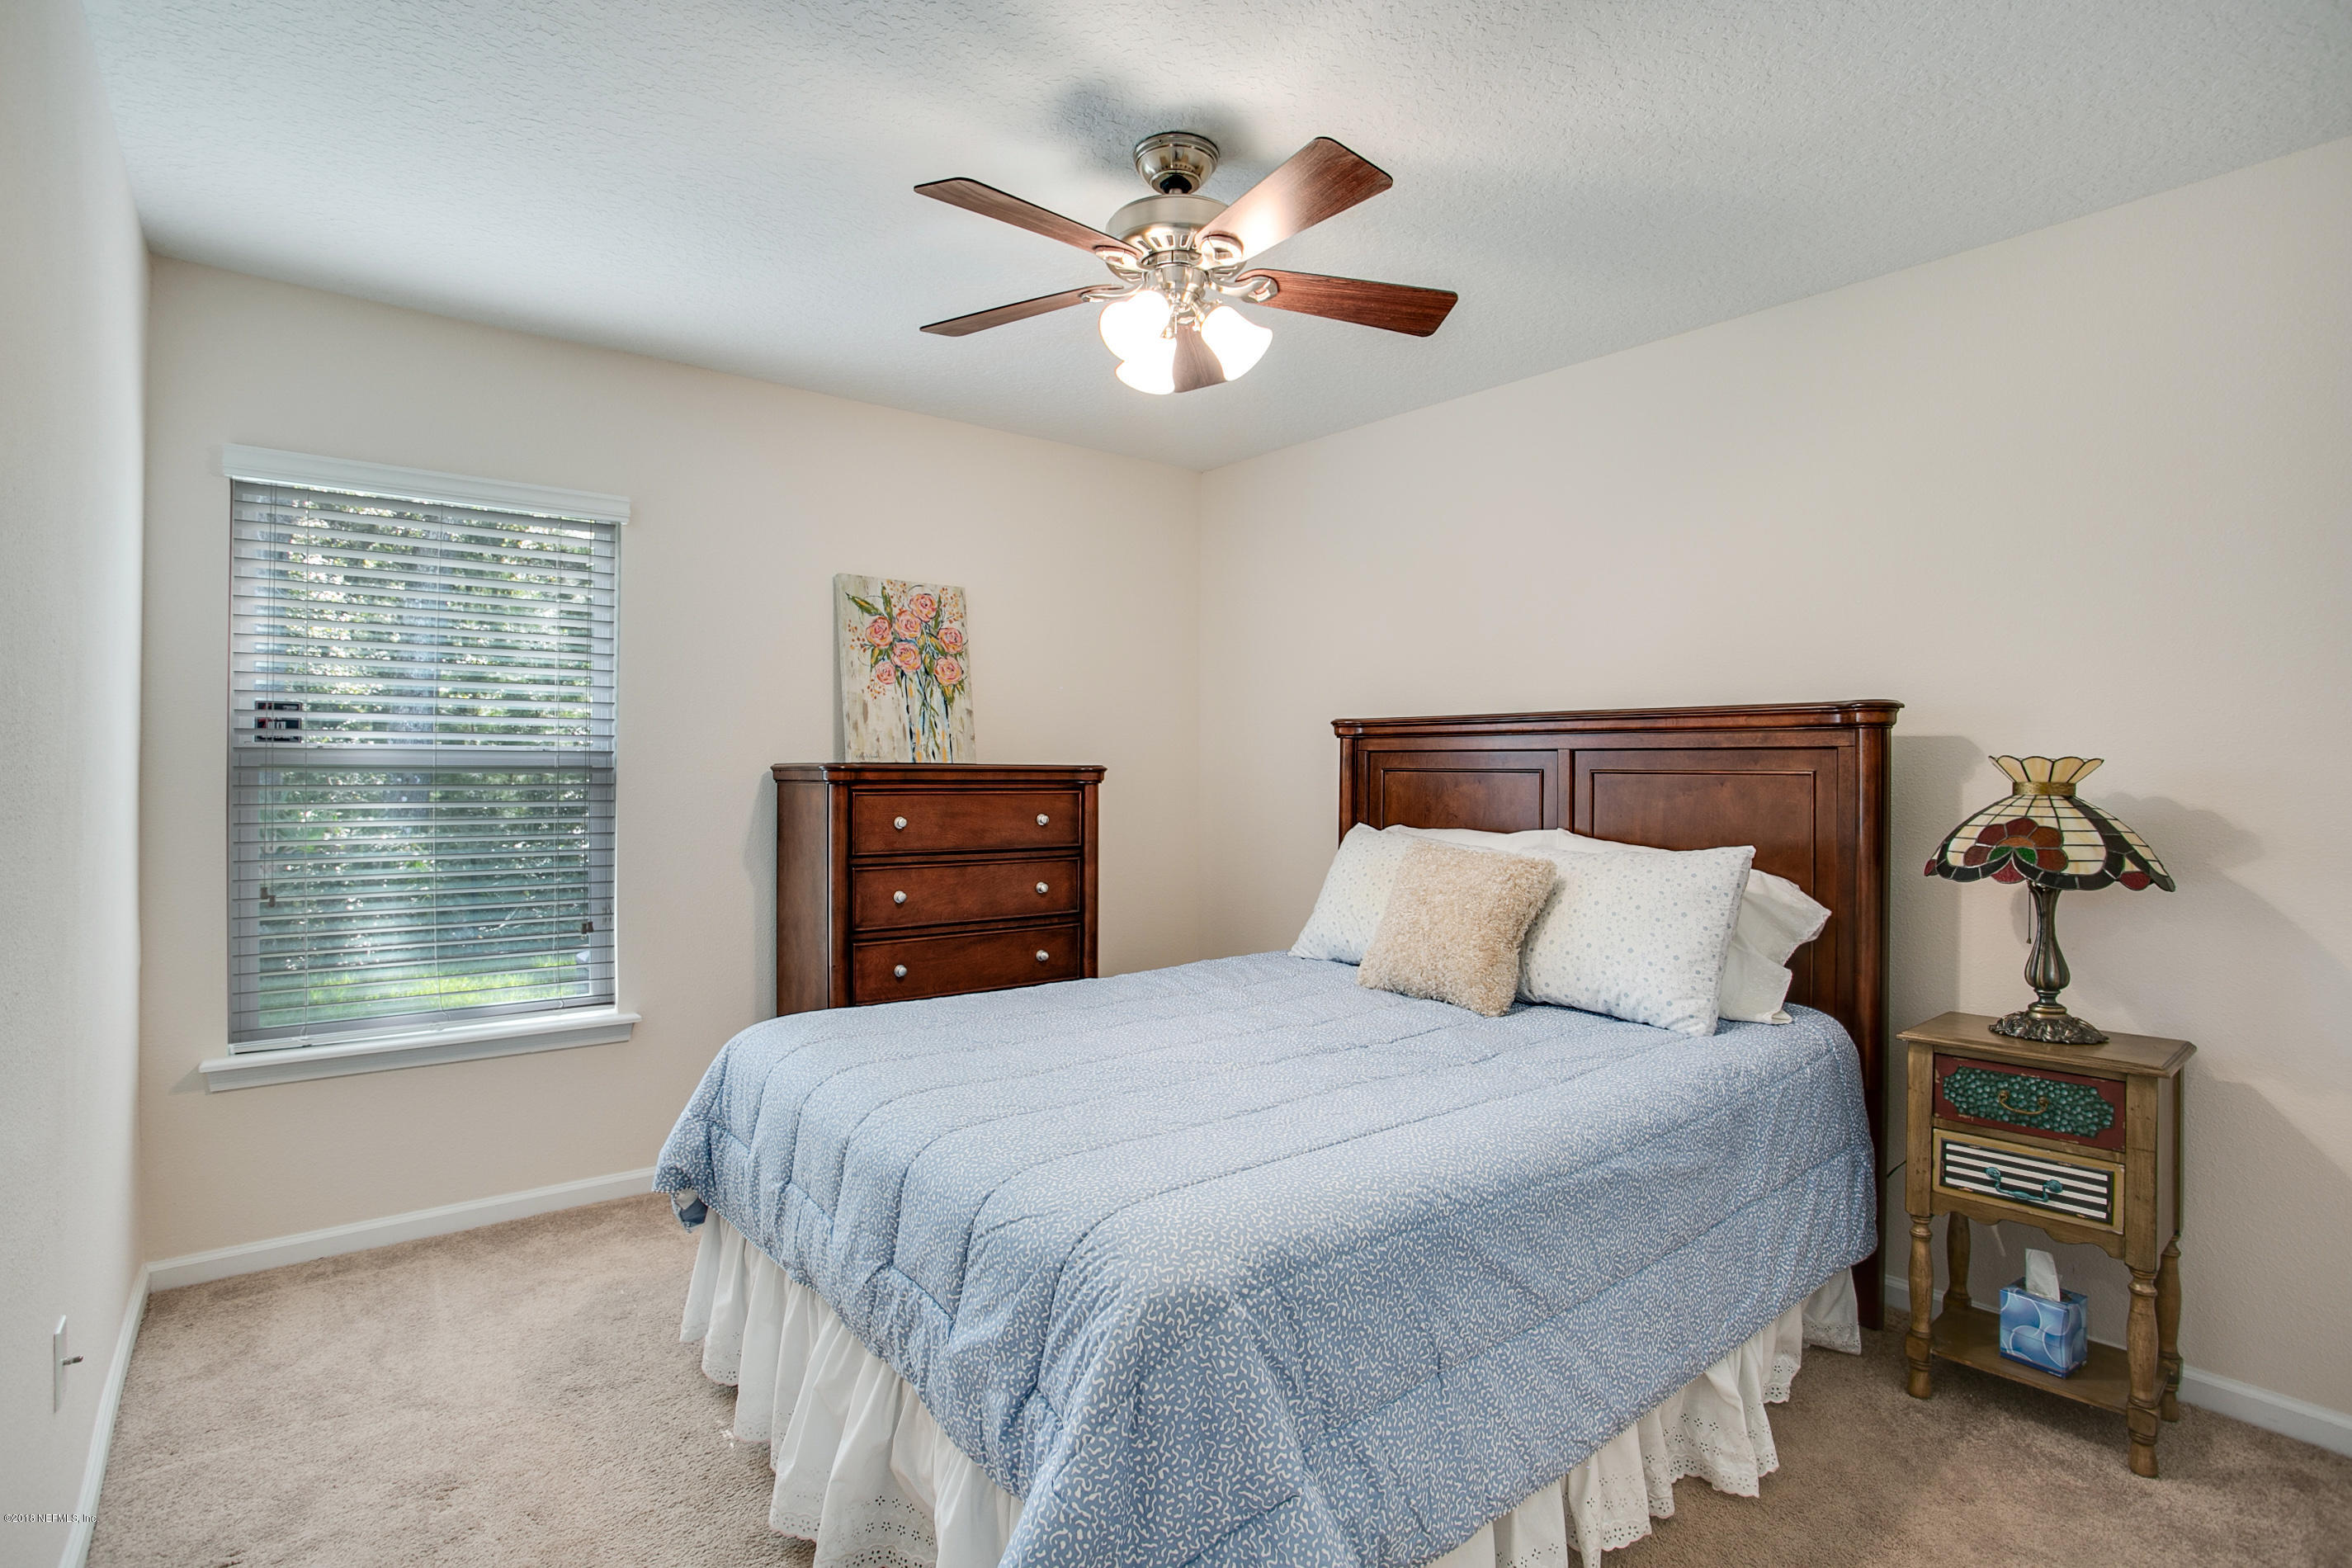 2580 CODY, JACKSONVILLE, FLORIDA 32223, 4 Bedrooms Bedrooms, ,3 BathroomsBathrooms,Residential - single family,For sale,CODY,964782